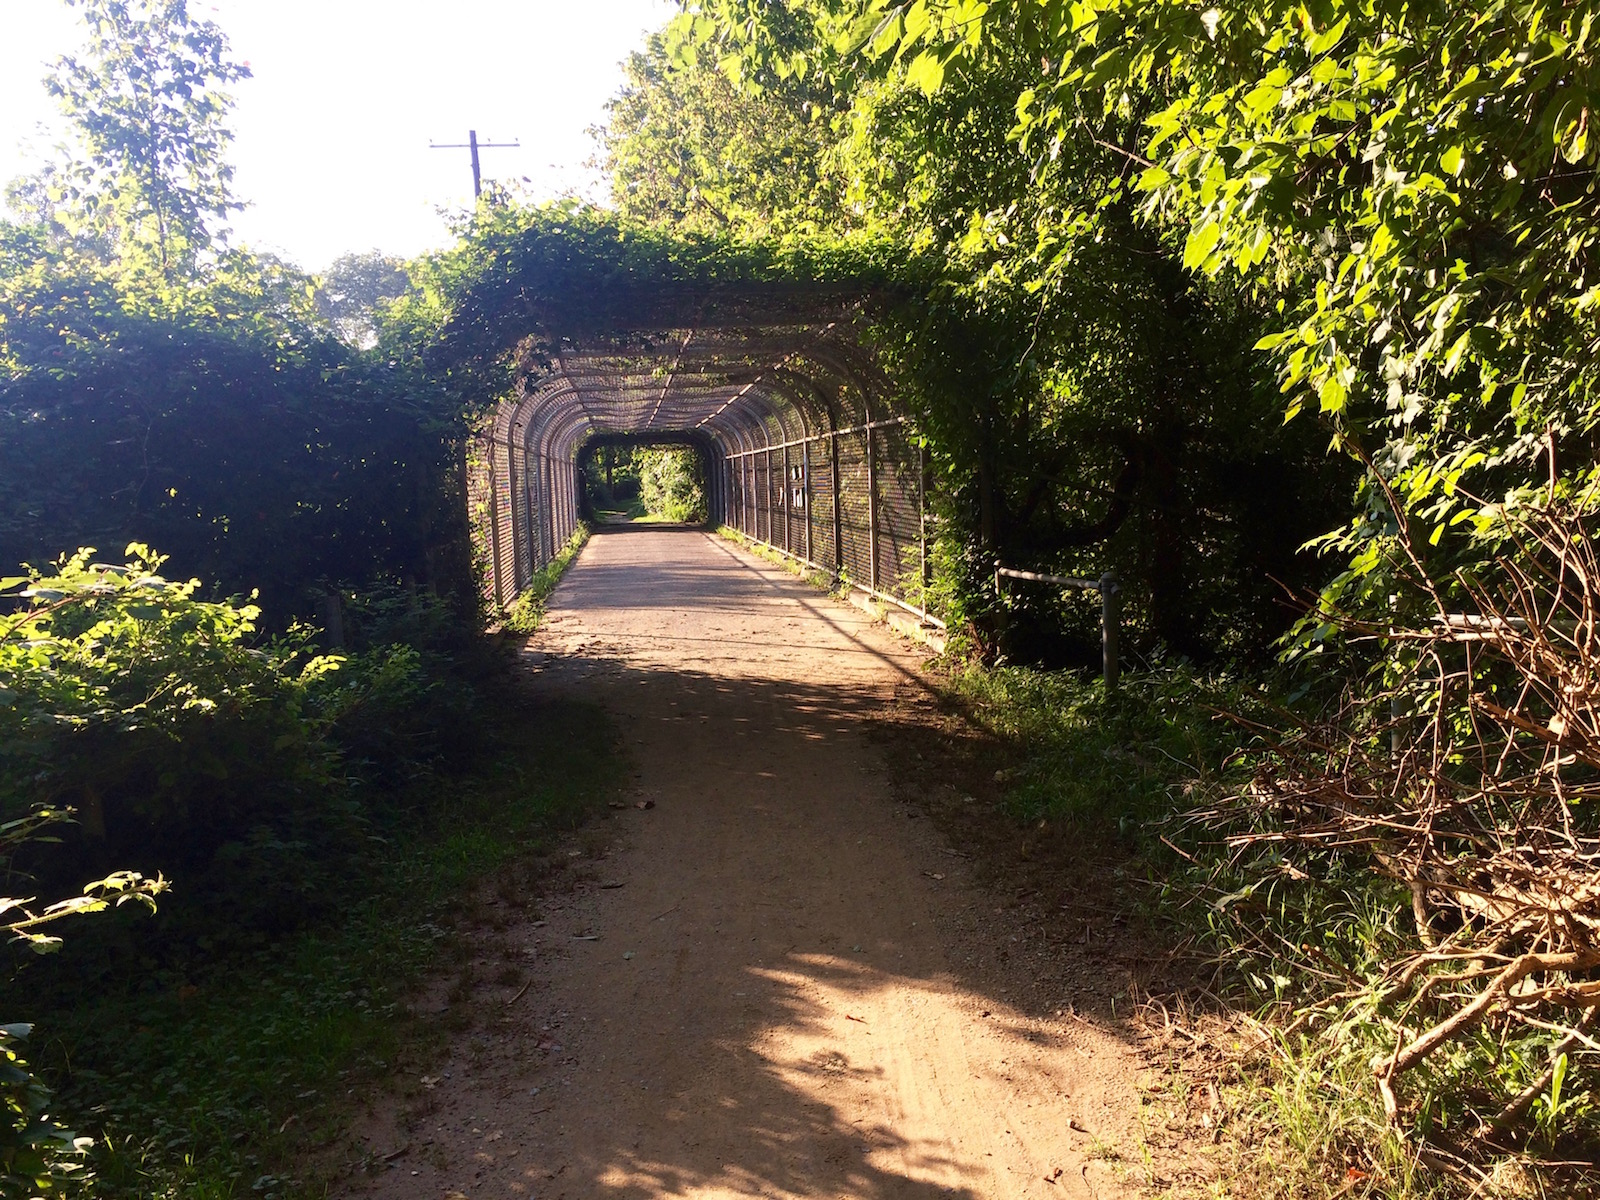 As DDOT studies options for Palisades Trolley Trail